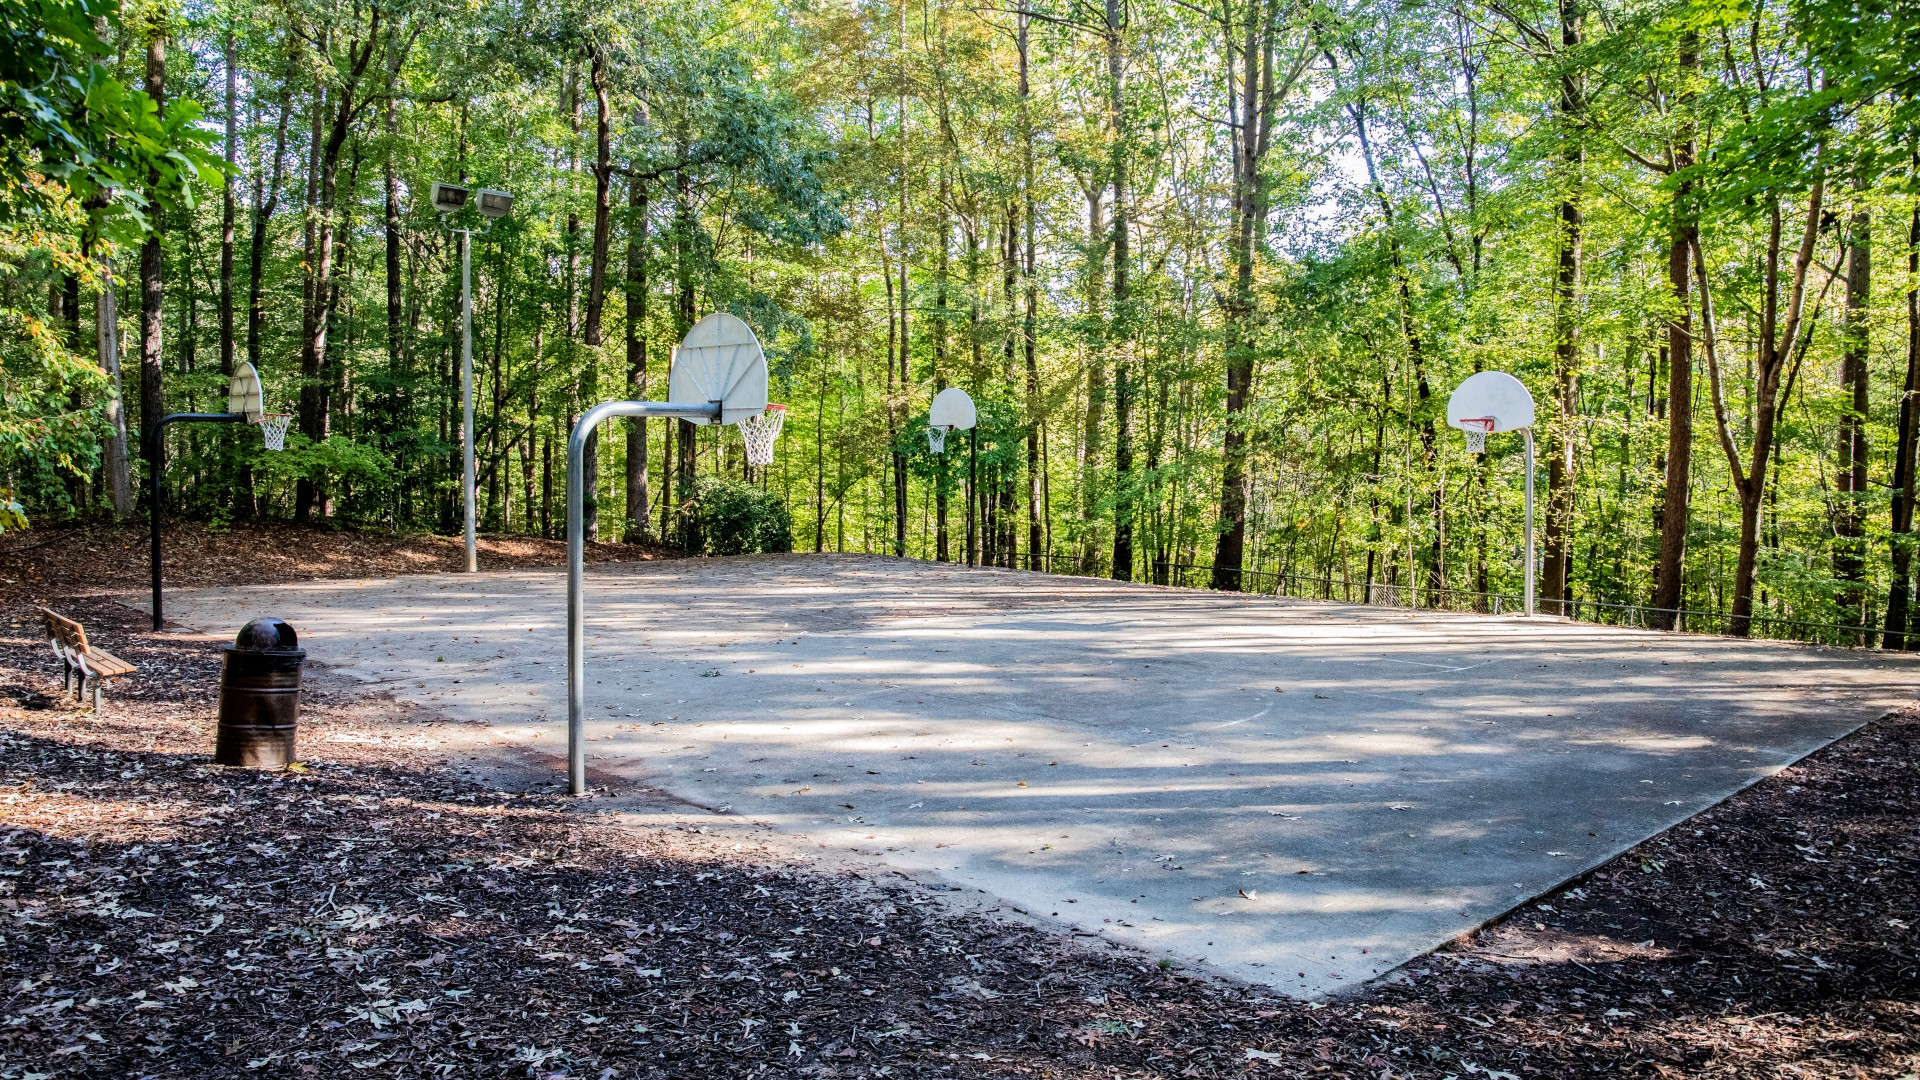 Outdoor basketball court with four baskets at Cedar Hills Park